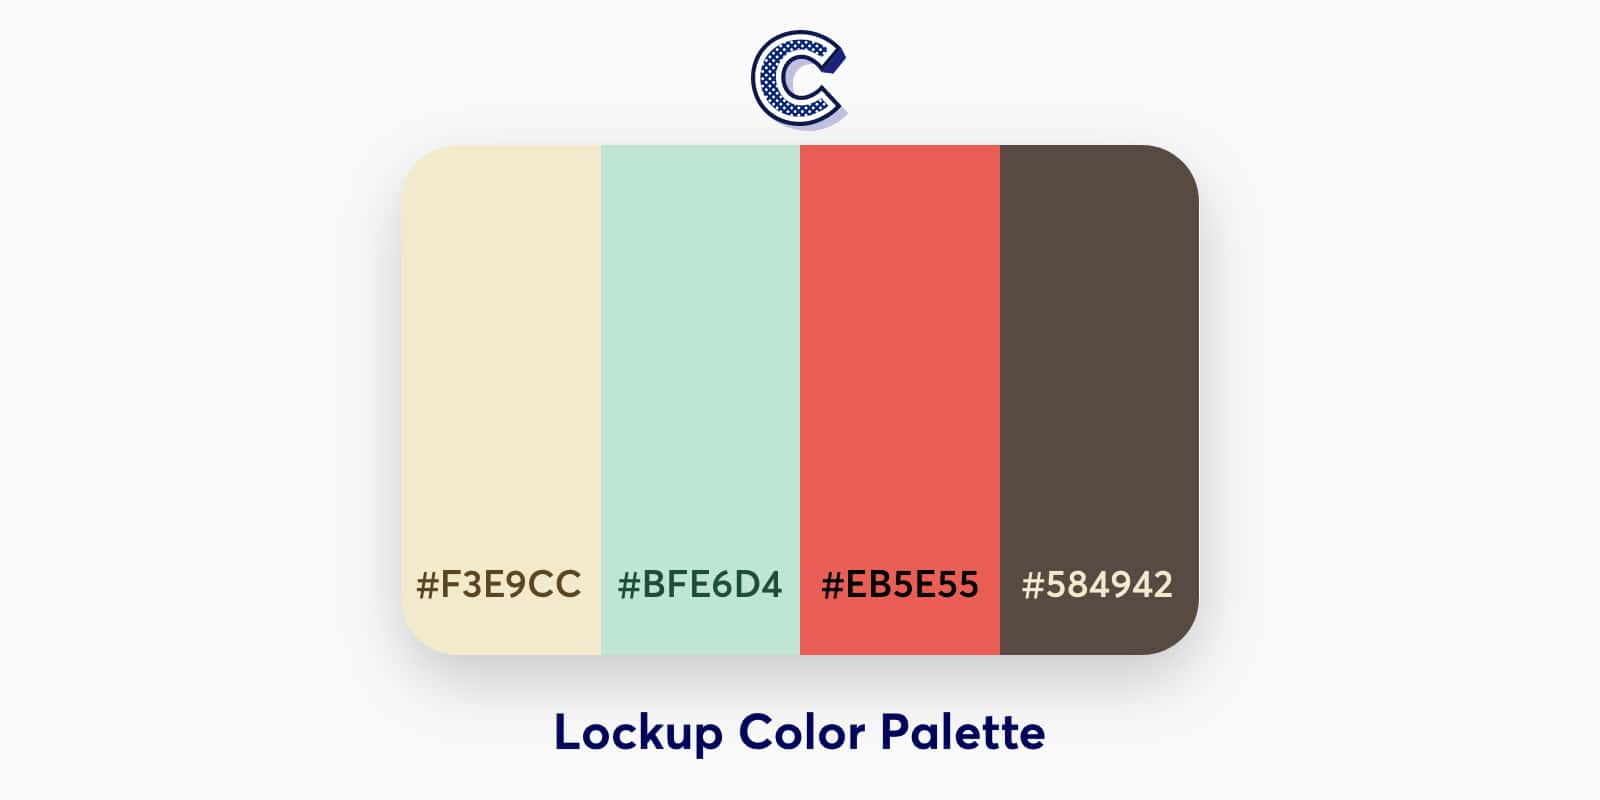 the featured image of lockup color palette